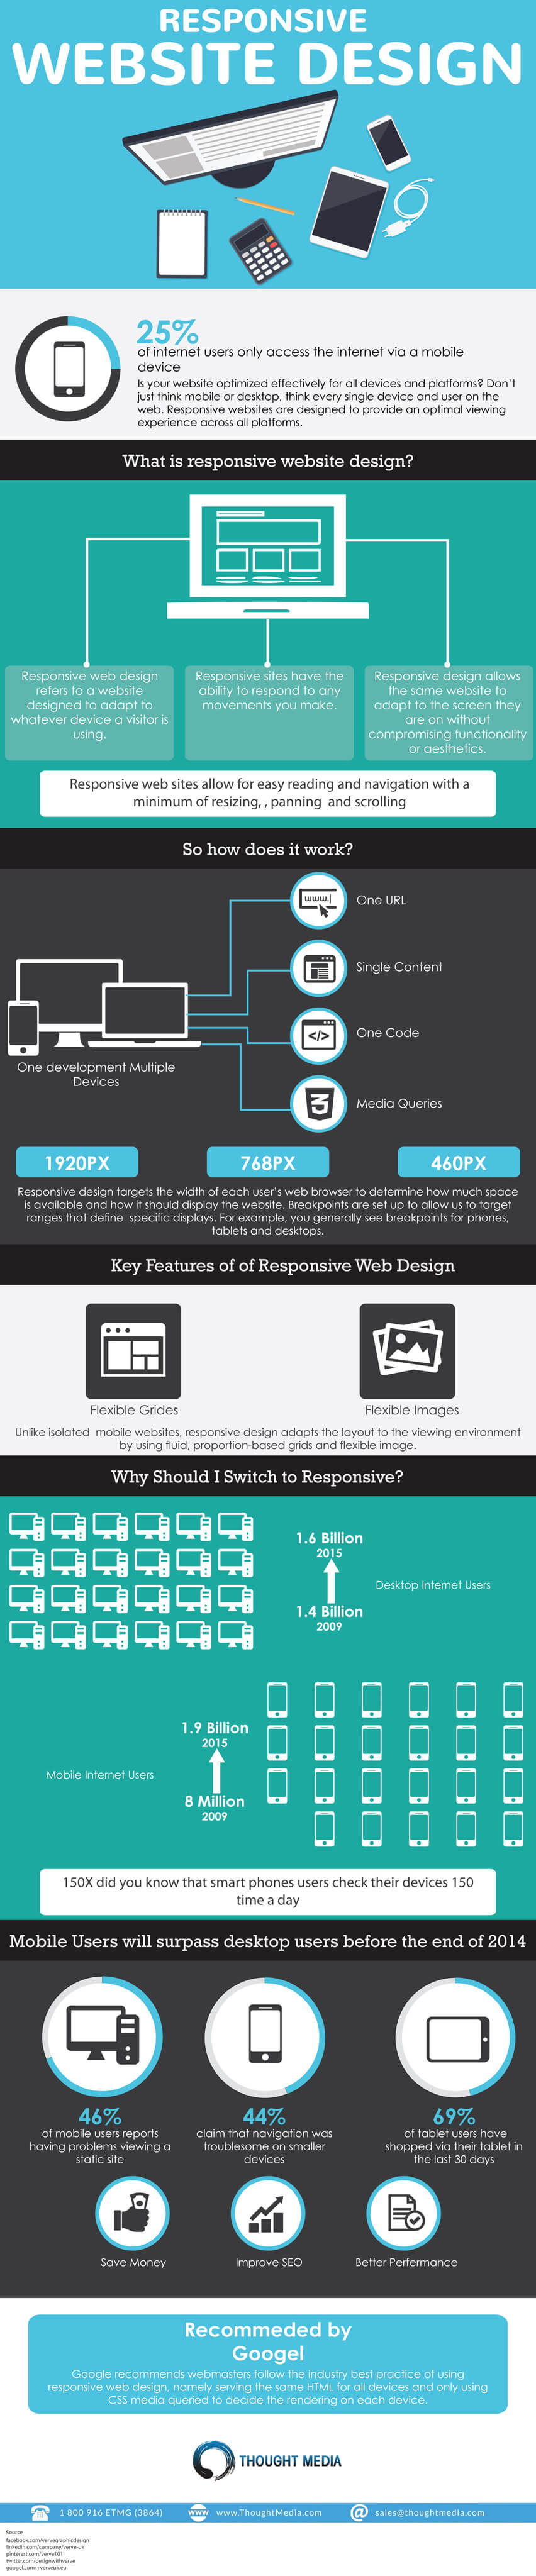 Responsive Website Design Facts